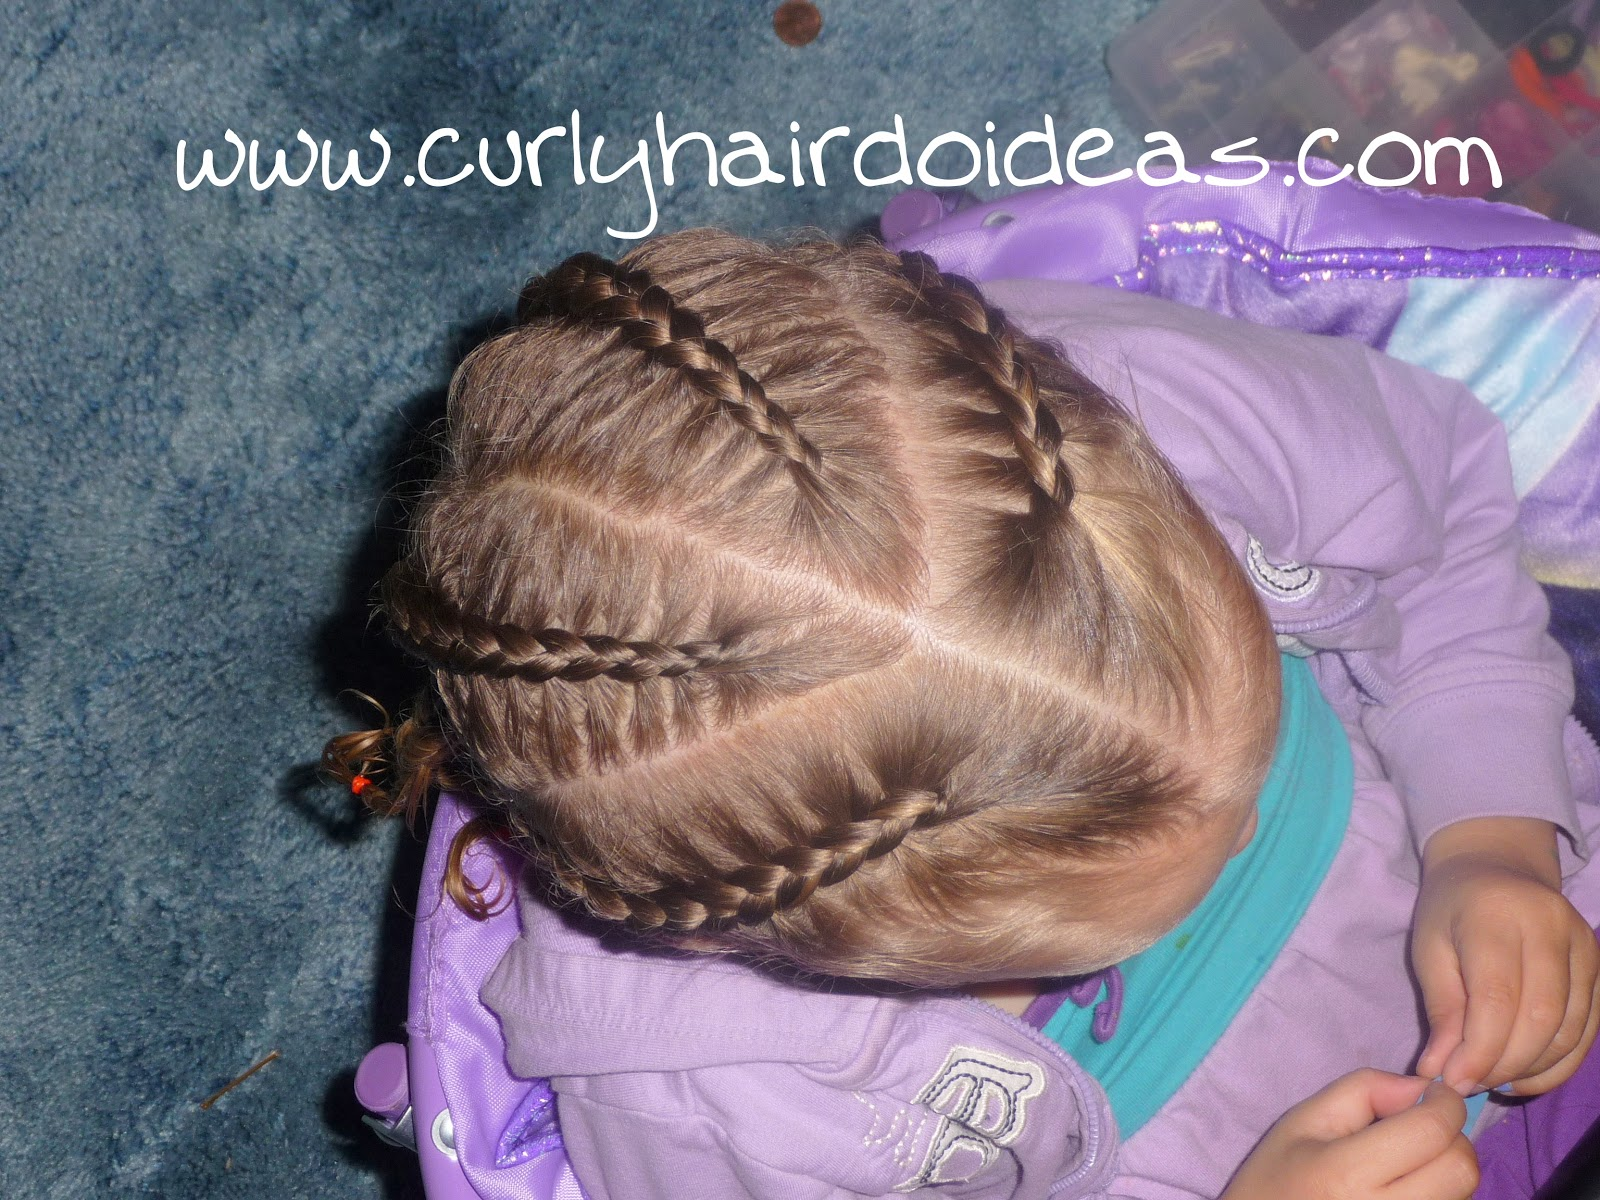 Super Curly Hairdo Ideas Quick And Easy Protective Hairstyle For Toddler Short Hairstyles For Black Women Fulllsitofus